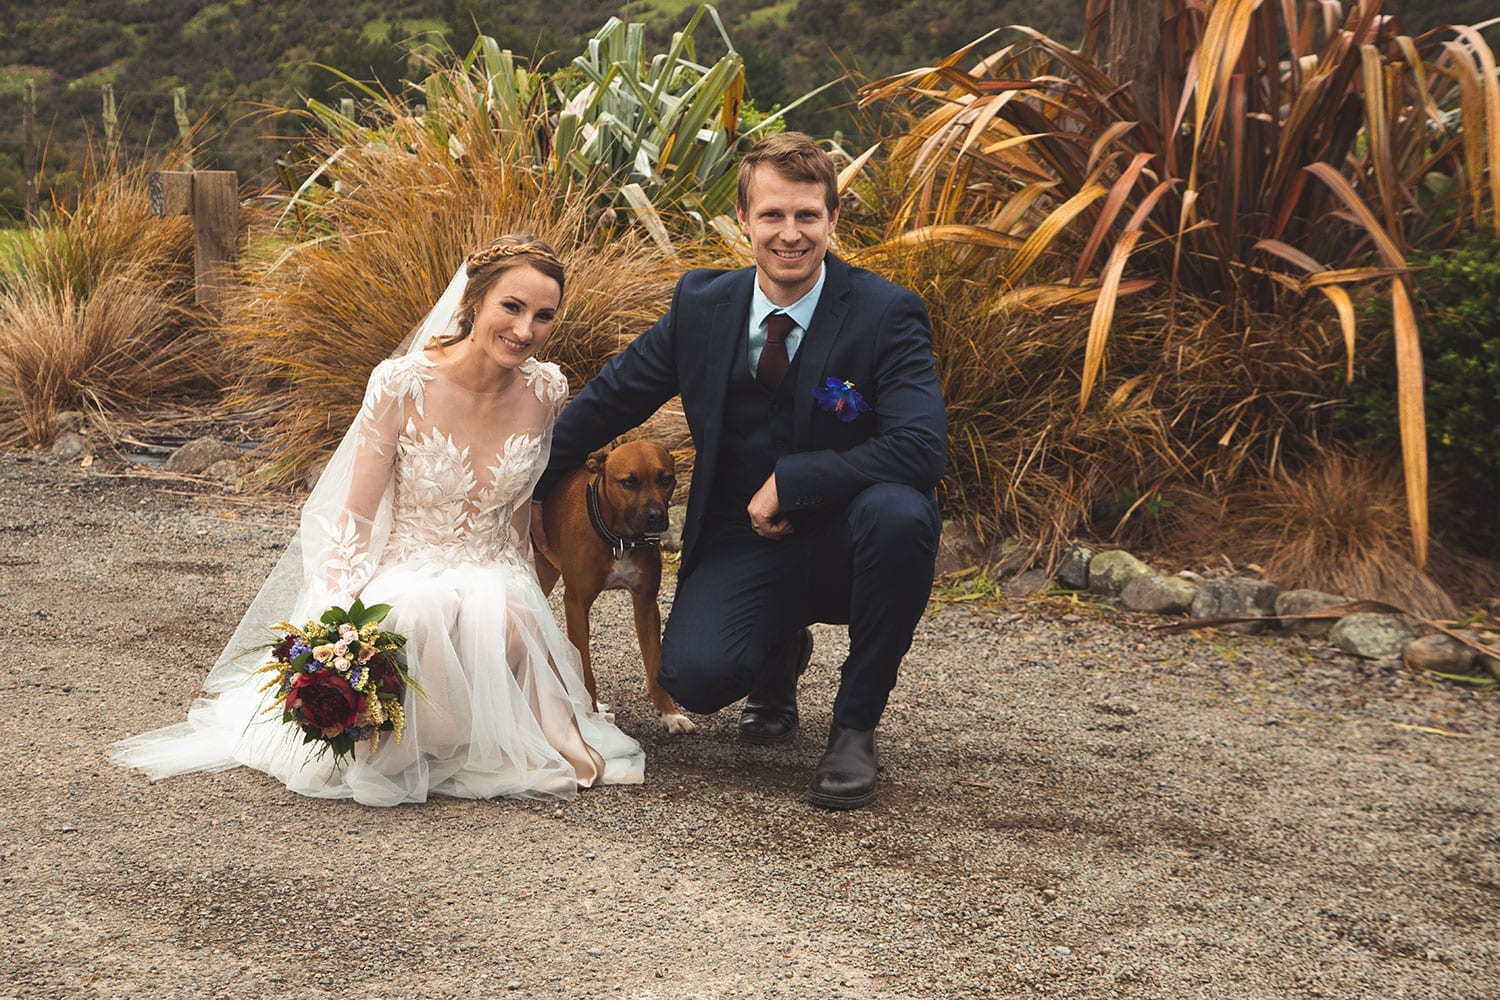 Vinka Design Features Real Weddings - bride in custom made gown, a combination of Isabelle and Ivy from our Heart of Havana collection. Bride and groom kneeling with dog